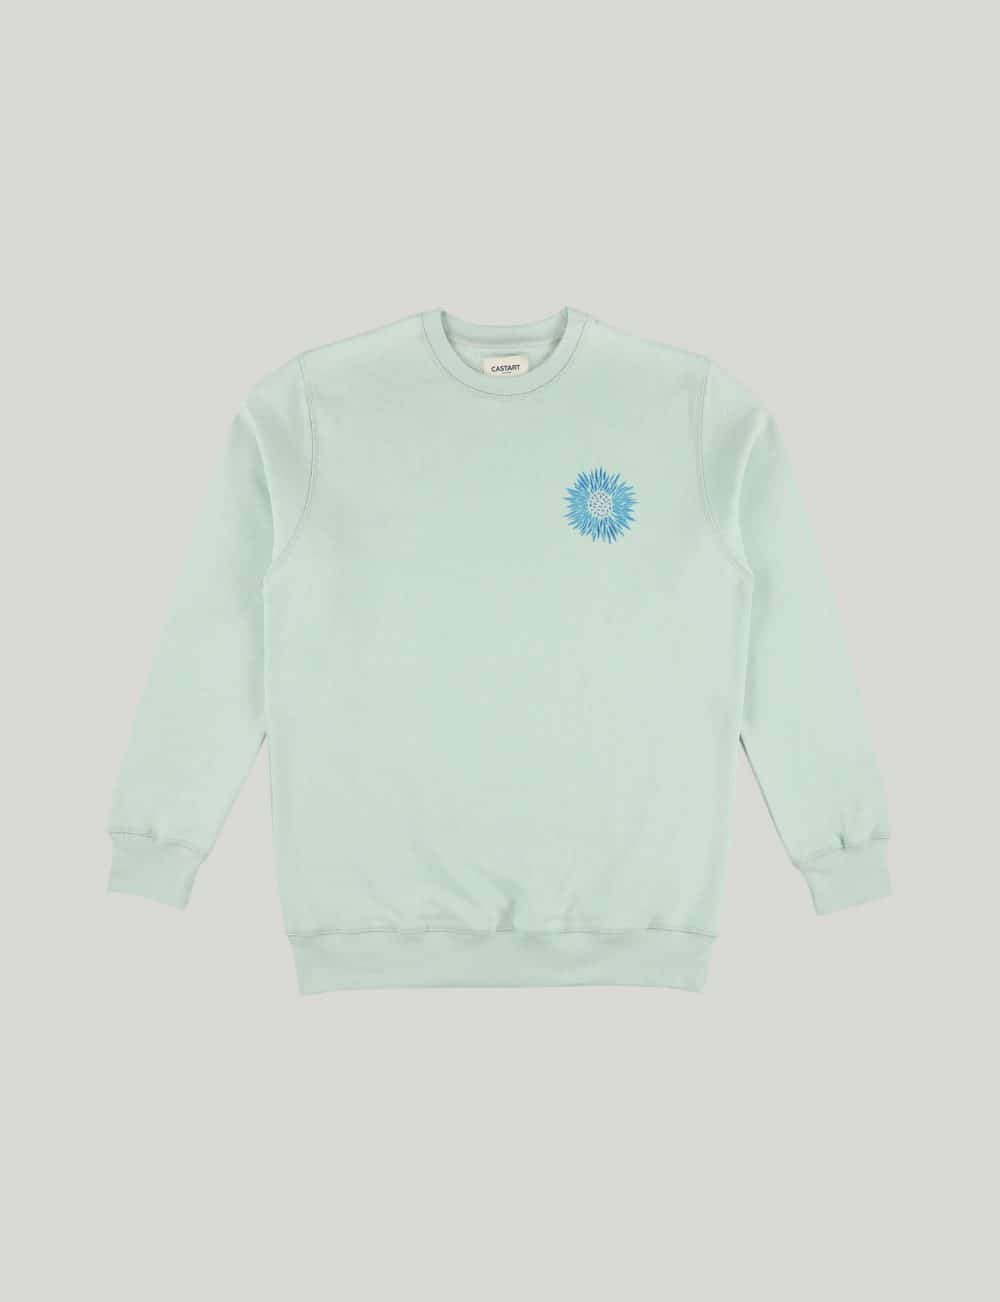 Castart - Mari Posa Sweater - Ice Blue